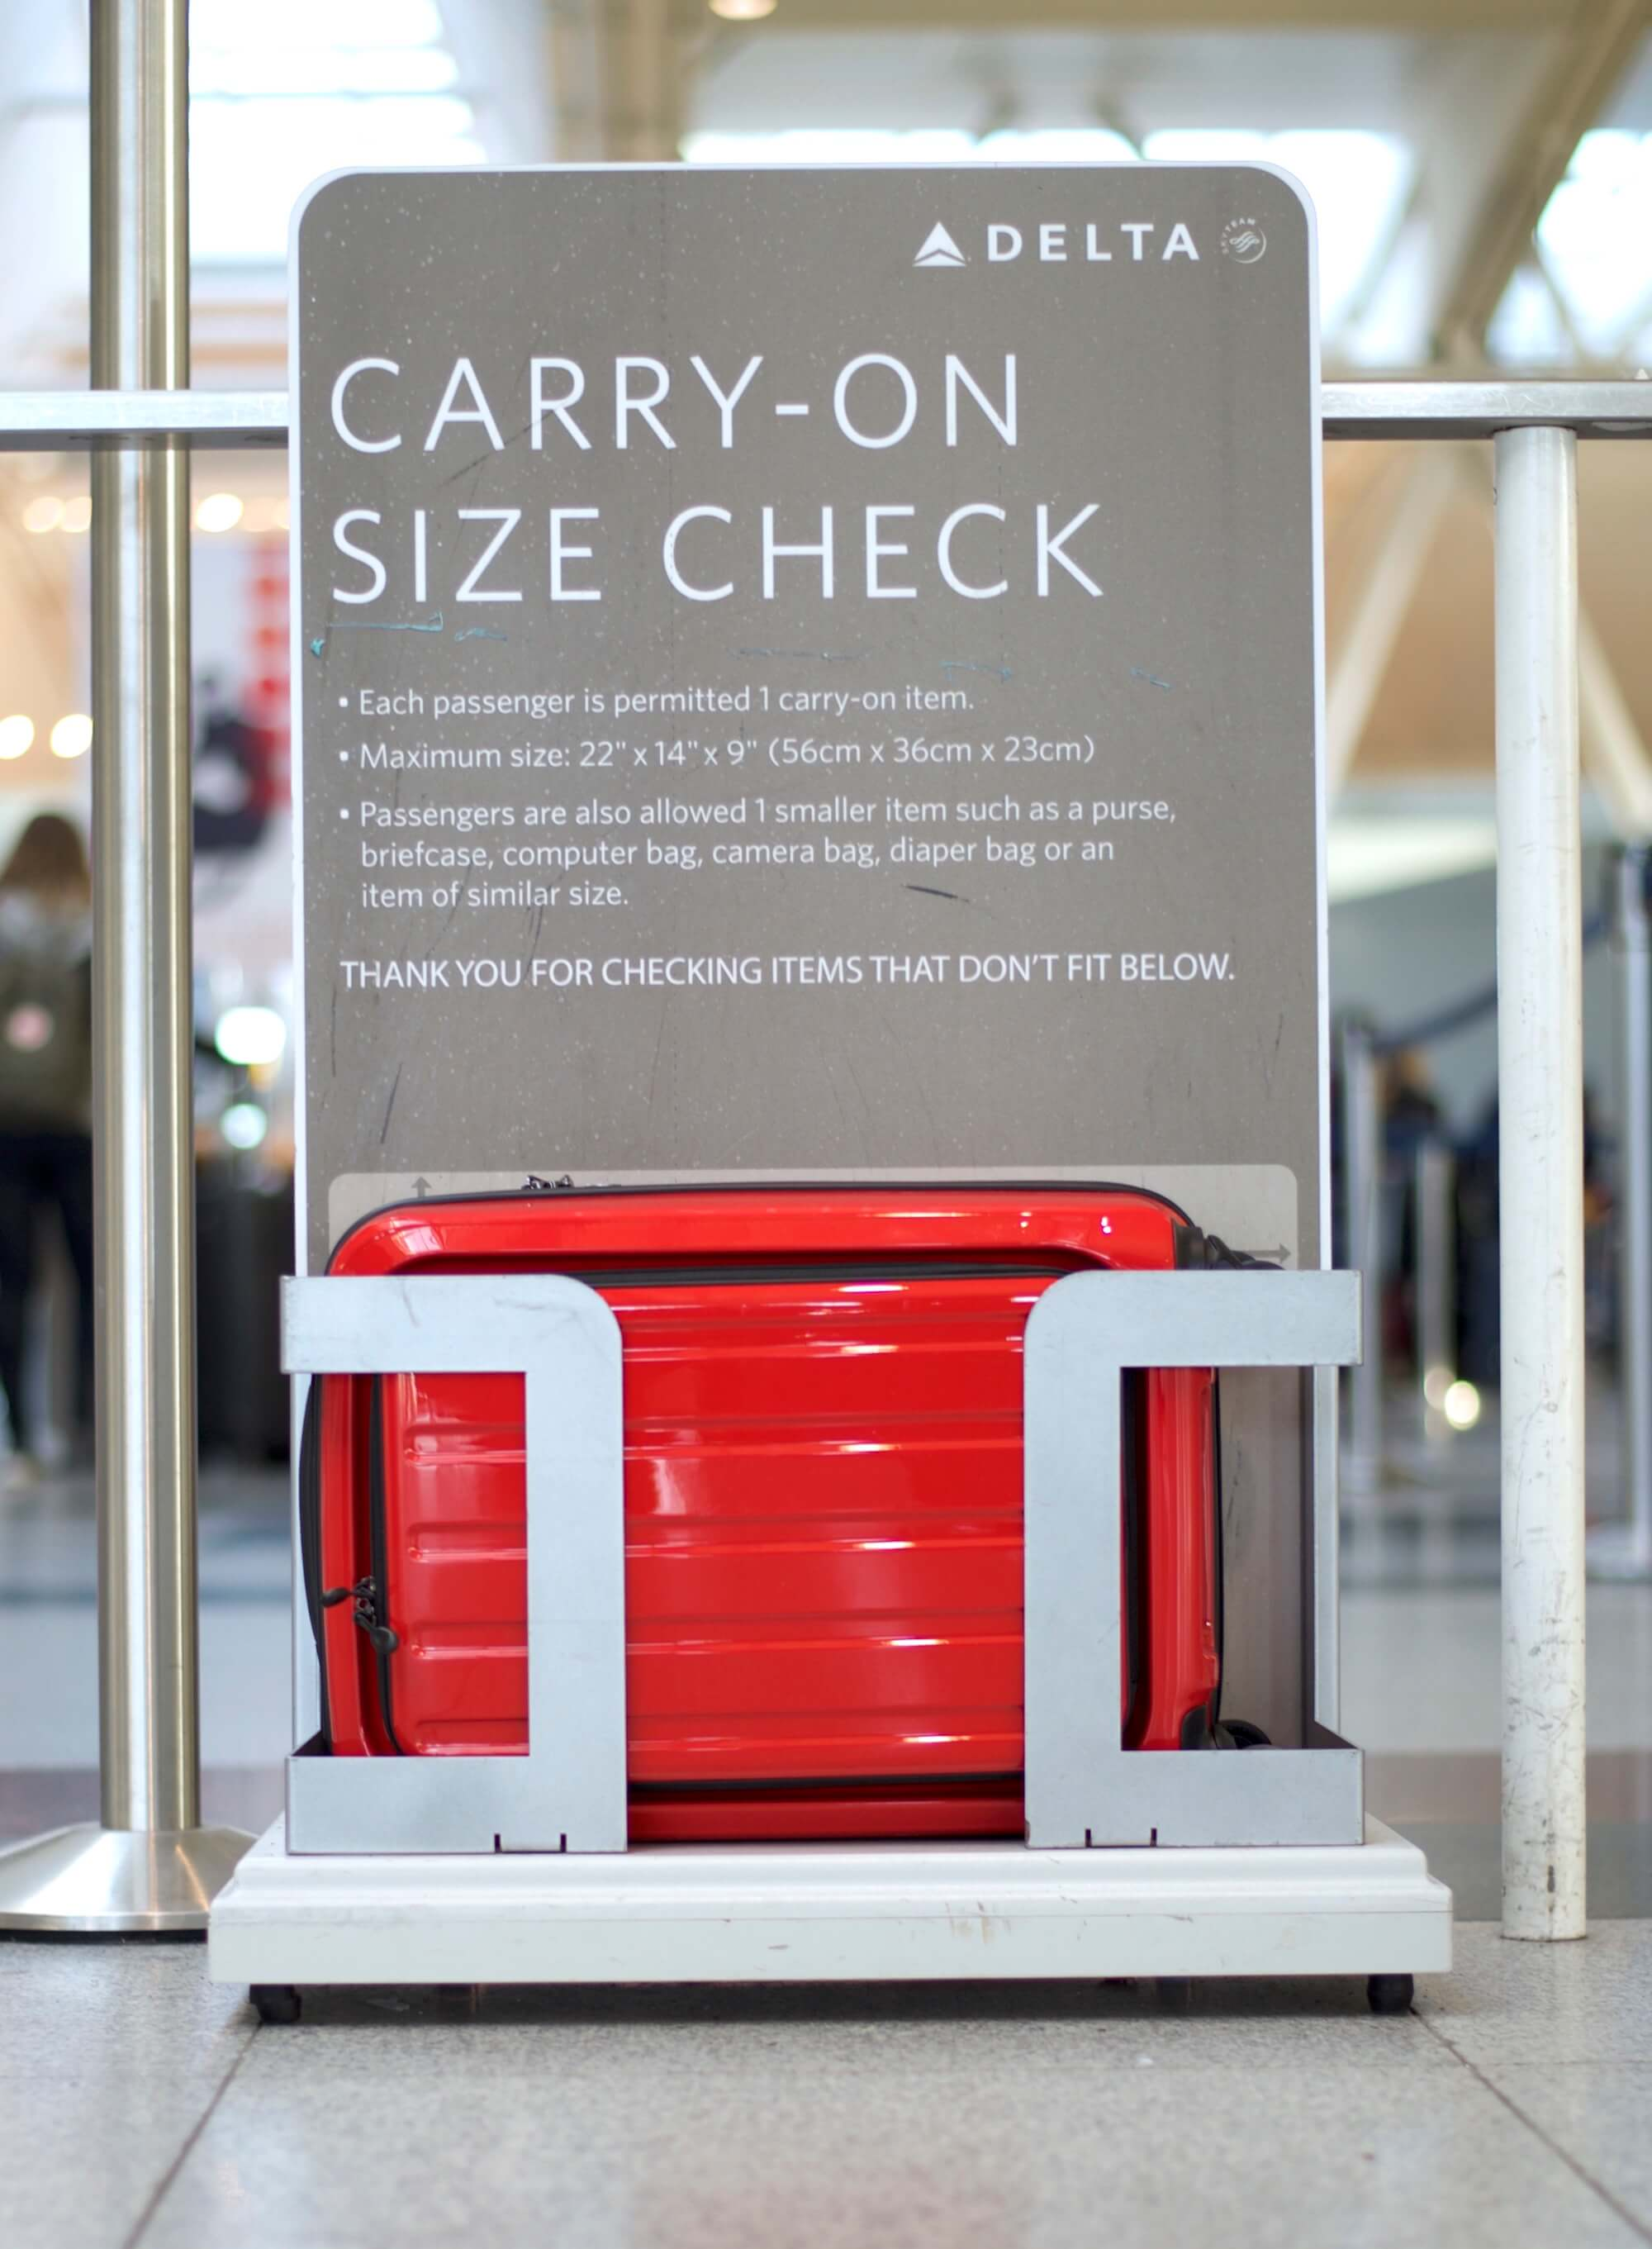 Within carry-on restrictions